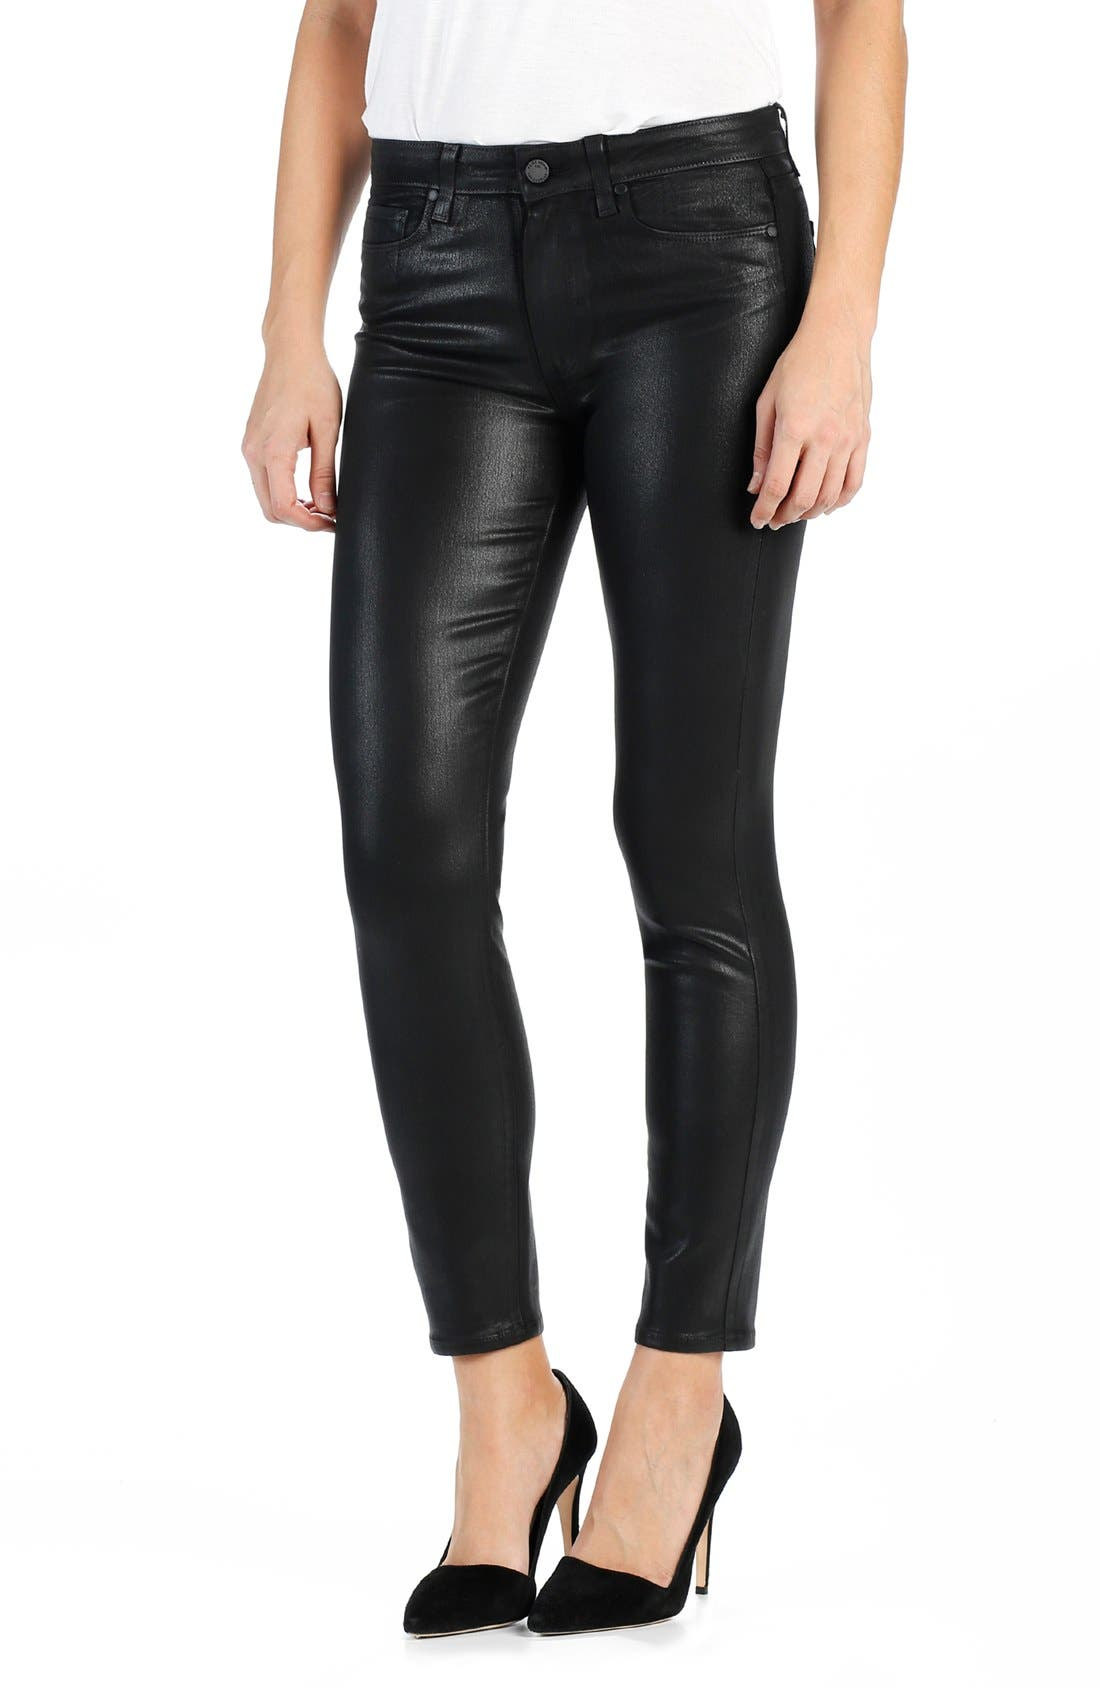 Main Image - PAIGE Transcend - Hoxton High Waist Ankle Skinny Jeans (Luxe Black Coated)